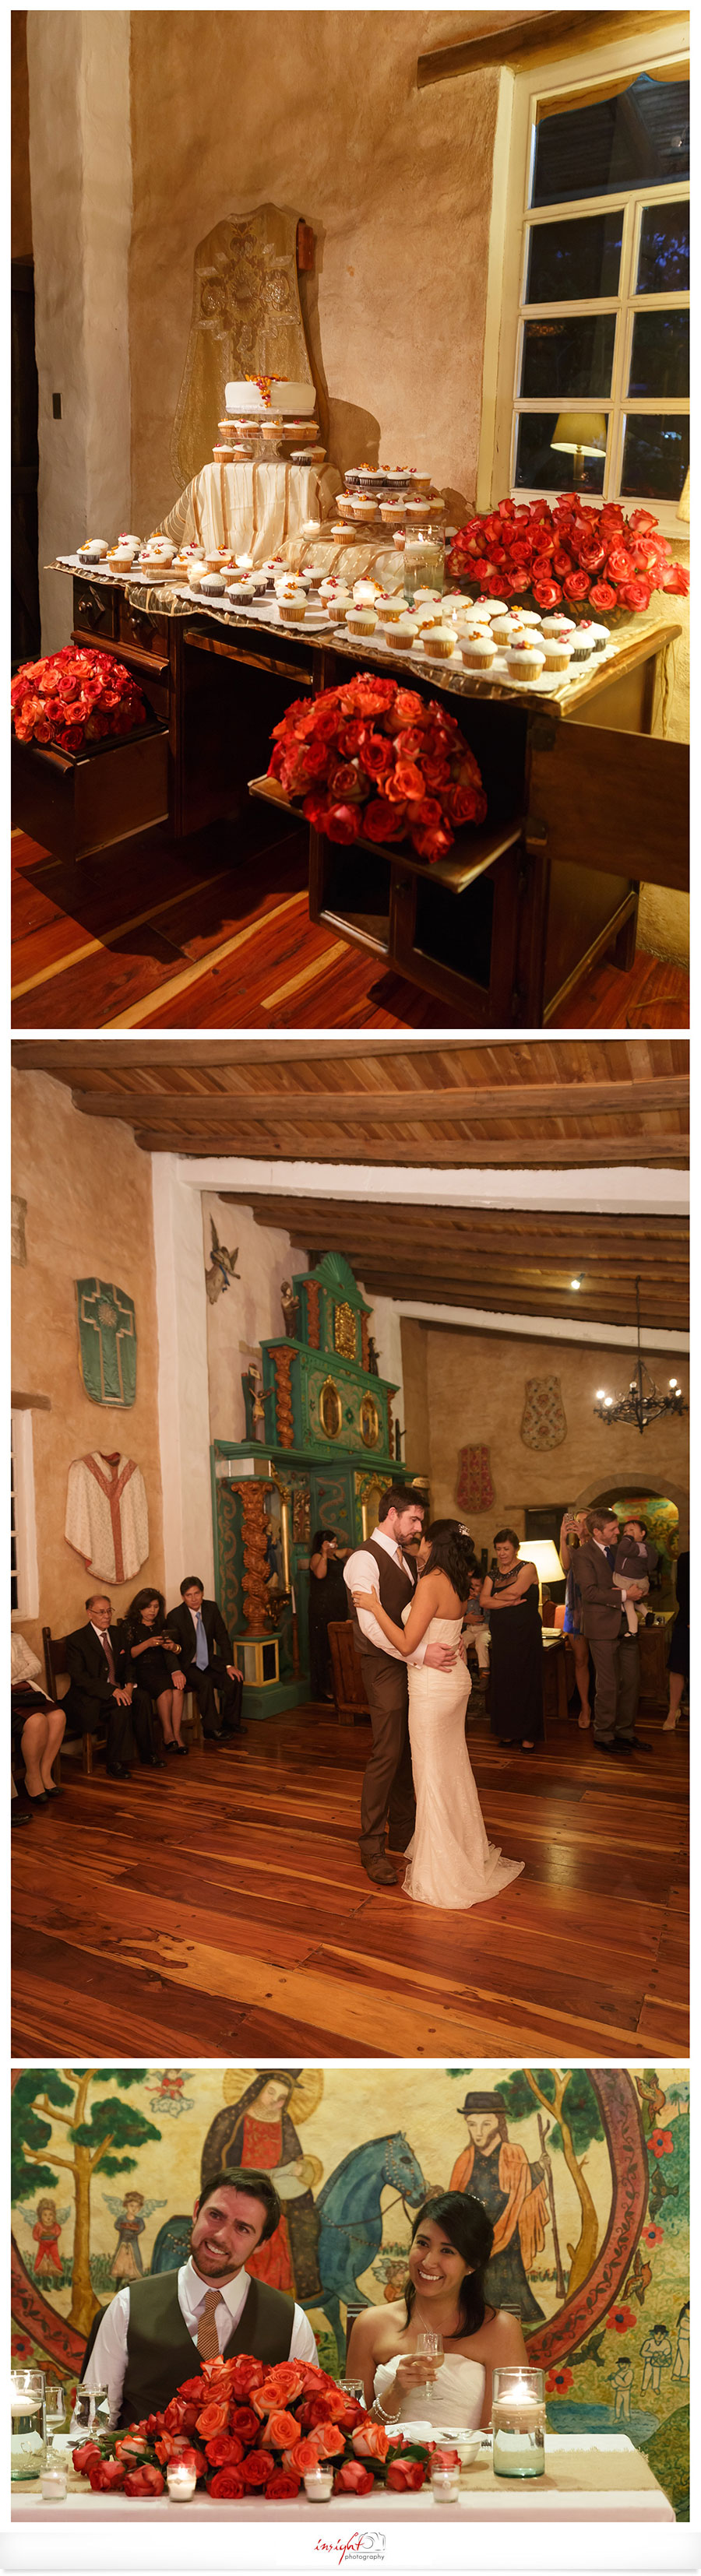 boda-hacienda-cusin-wedding-18